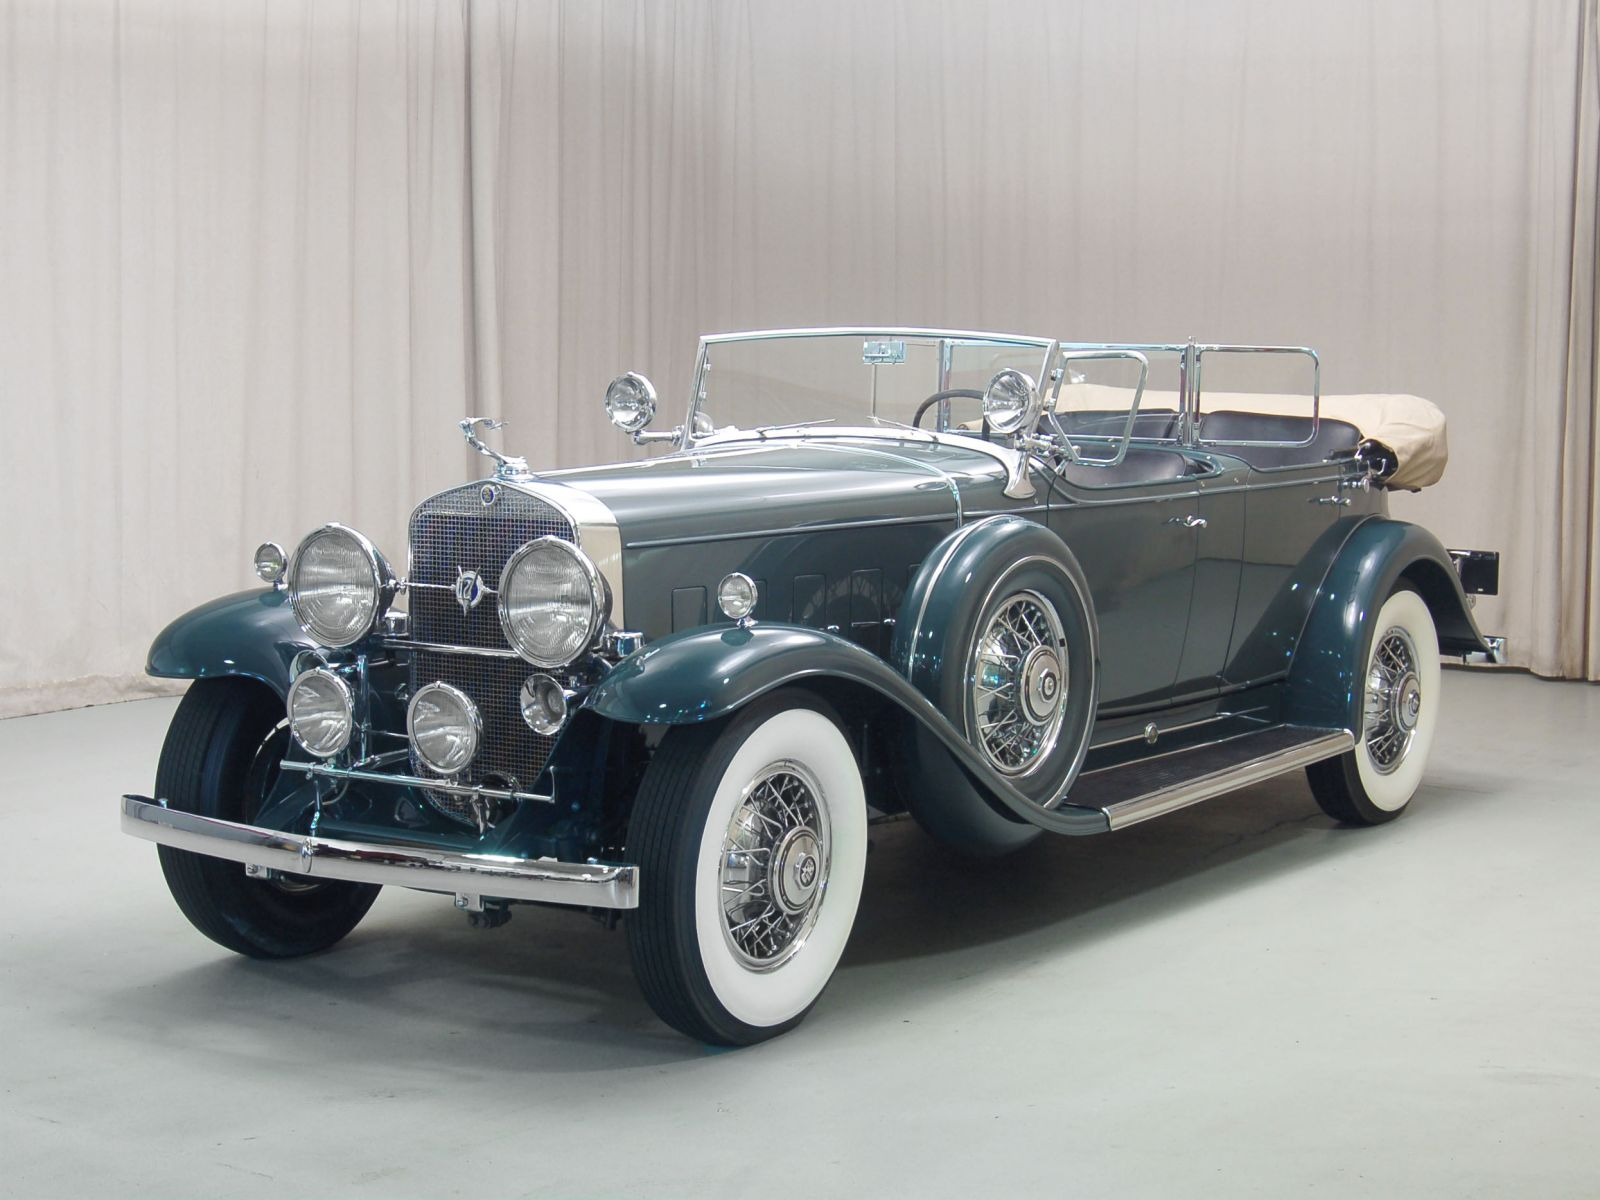 image Classic us a cadillac named desire